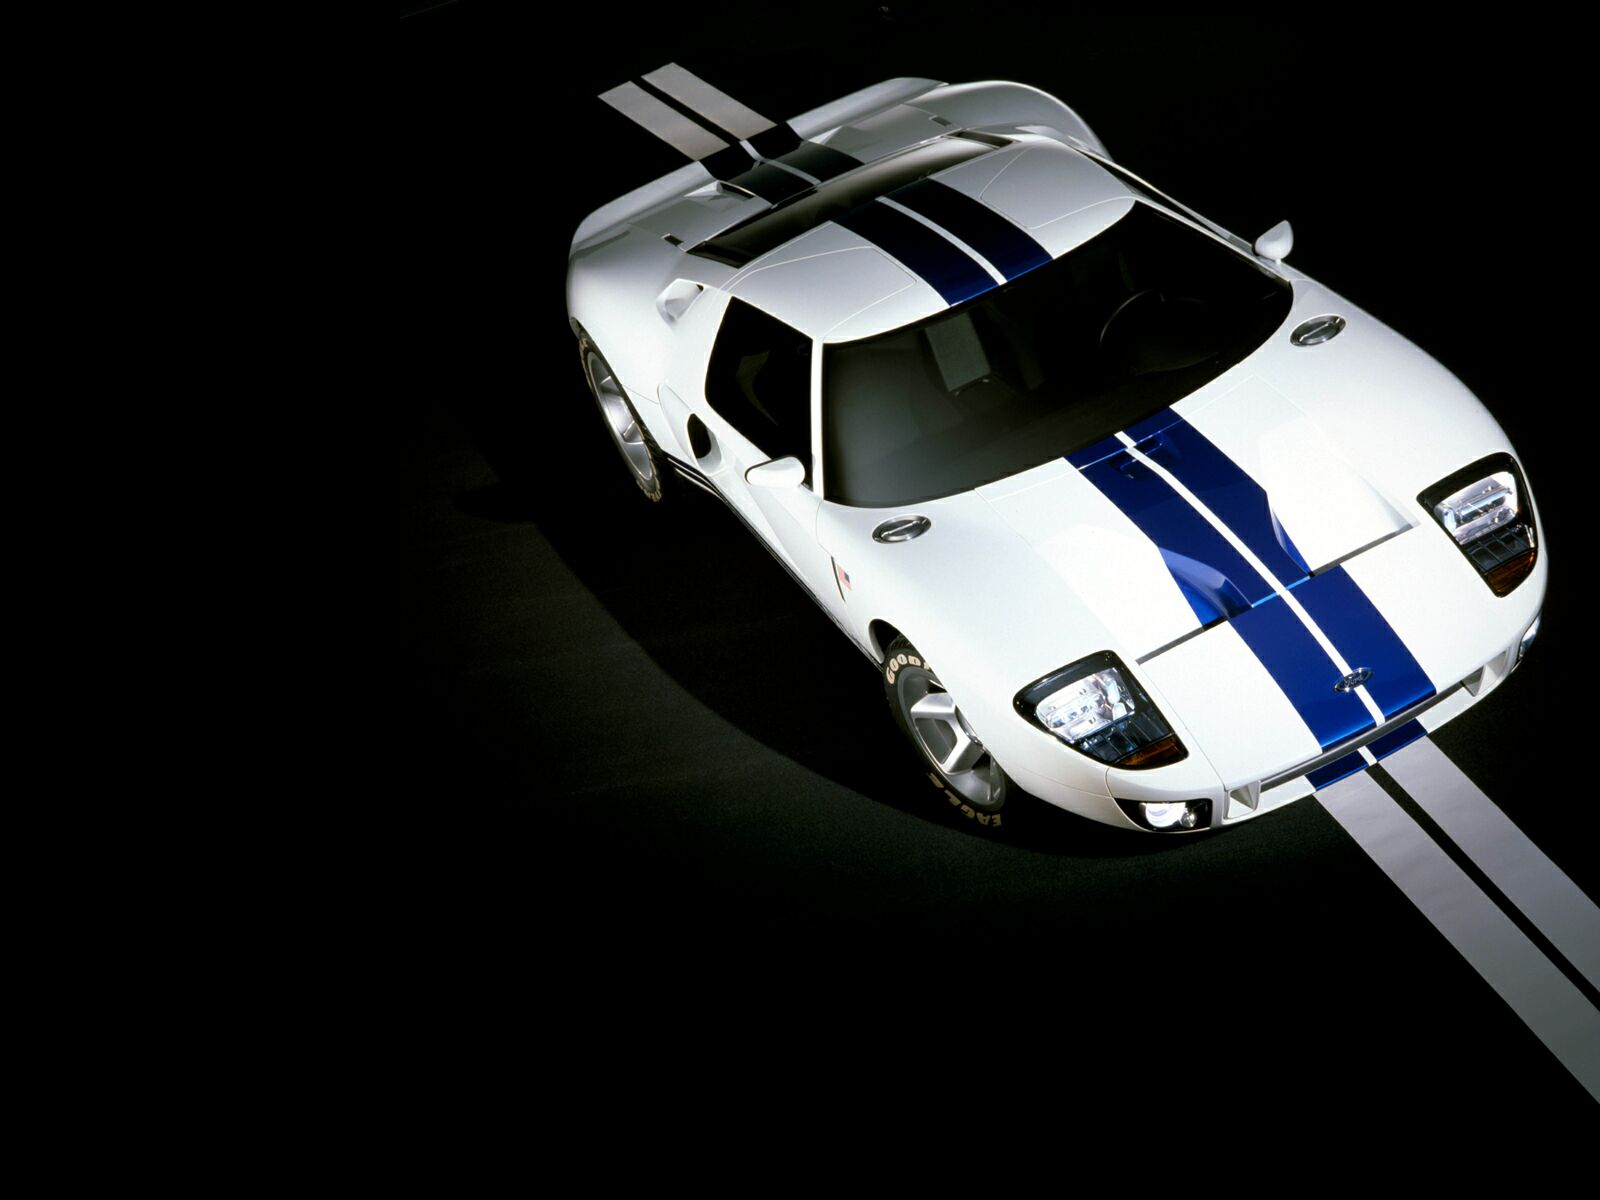 Ford Gt40 Wallpaper 6519 Hd Wallpapers in Cars   Imagescicom 1600x1200